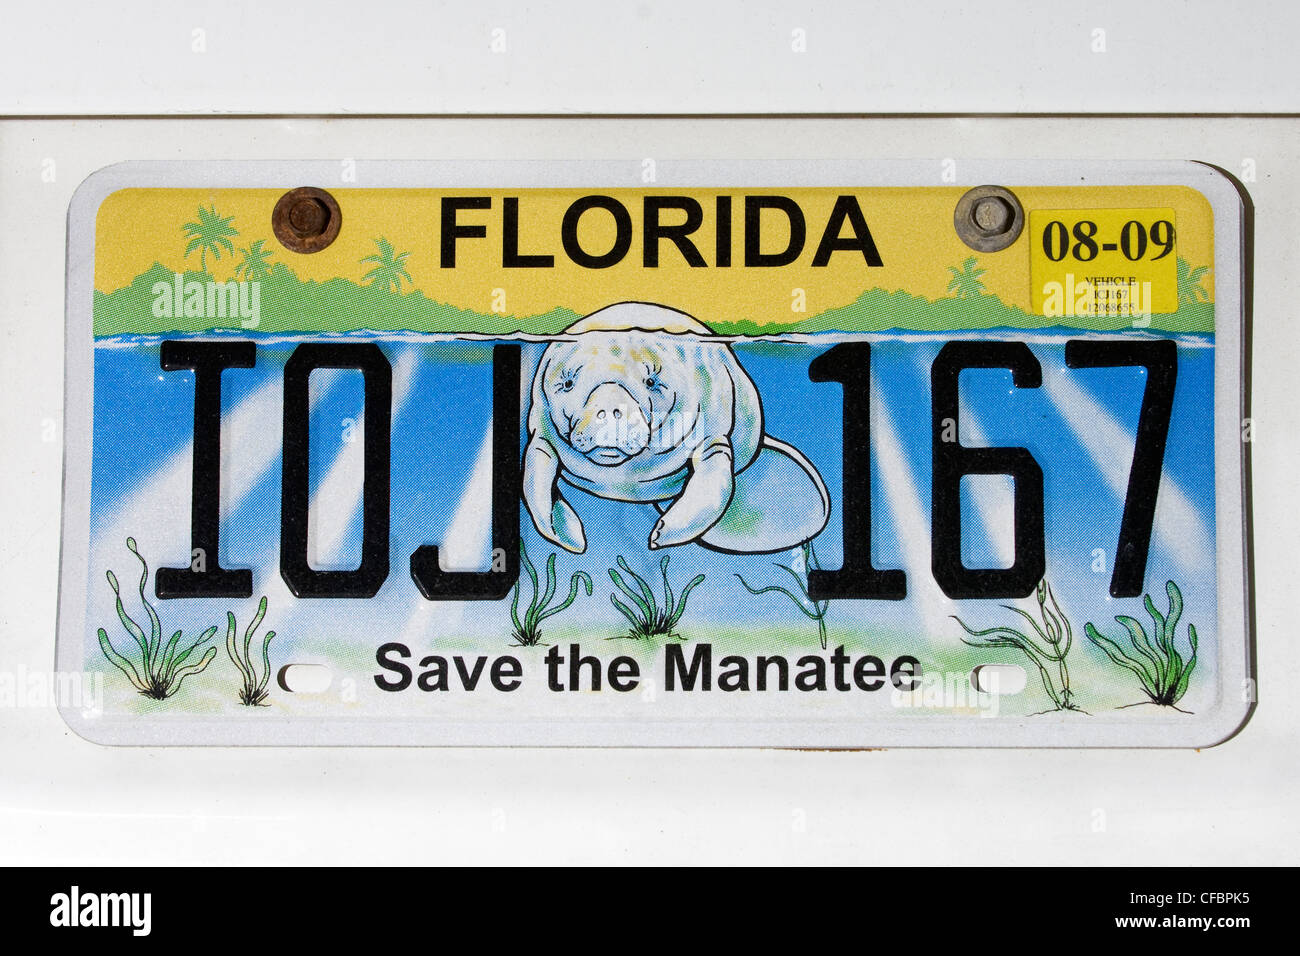 Save the manatee license plate, Florida, U.S.A. - Stock Image